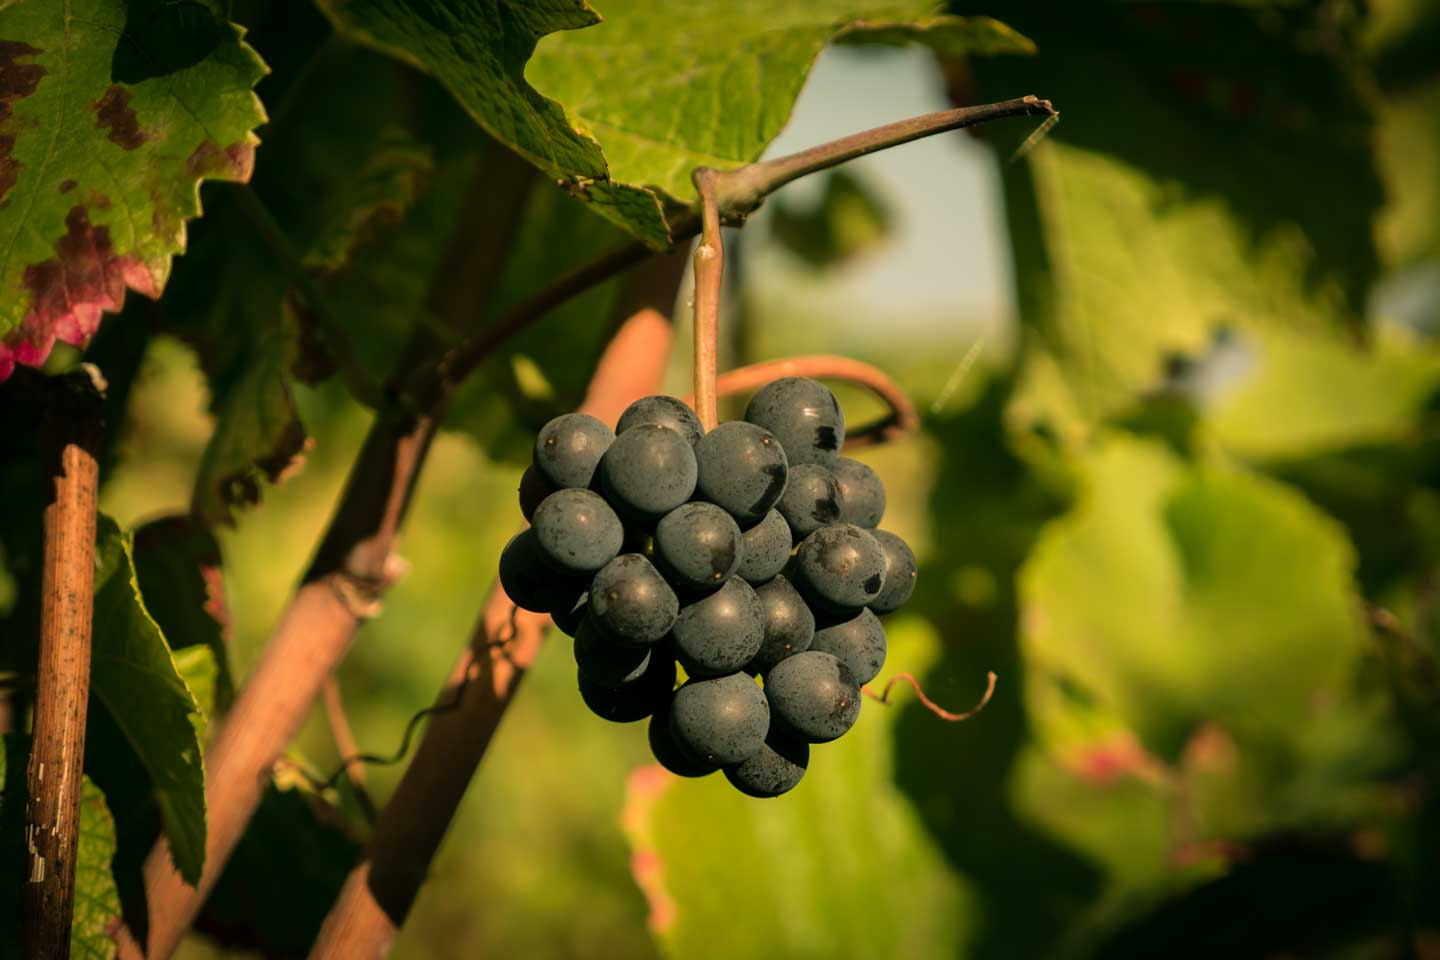 Ripe grapes at the Schlemmerwanderung in Oppenheim 2015